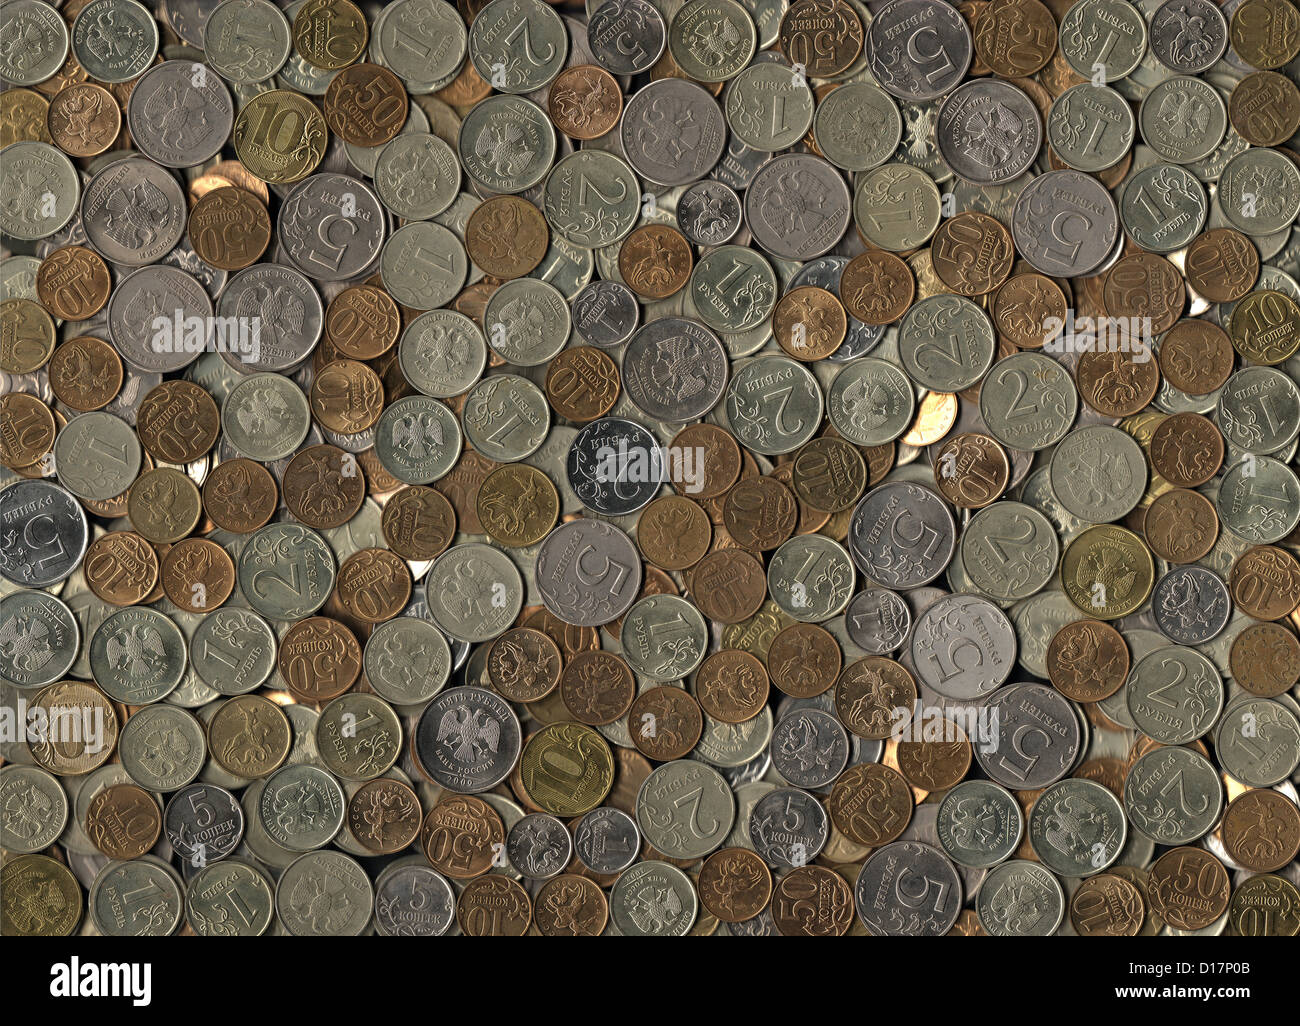 background of miscellaneous Russian coins - Stock Image